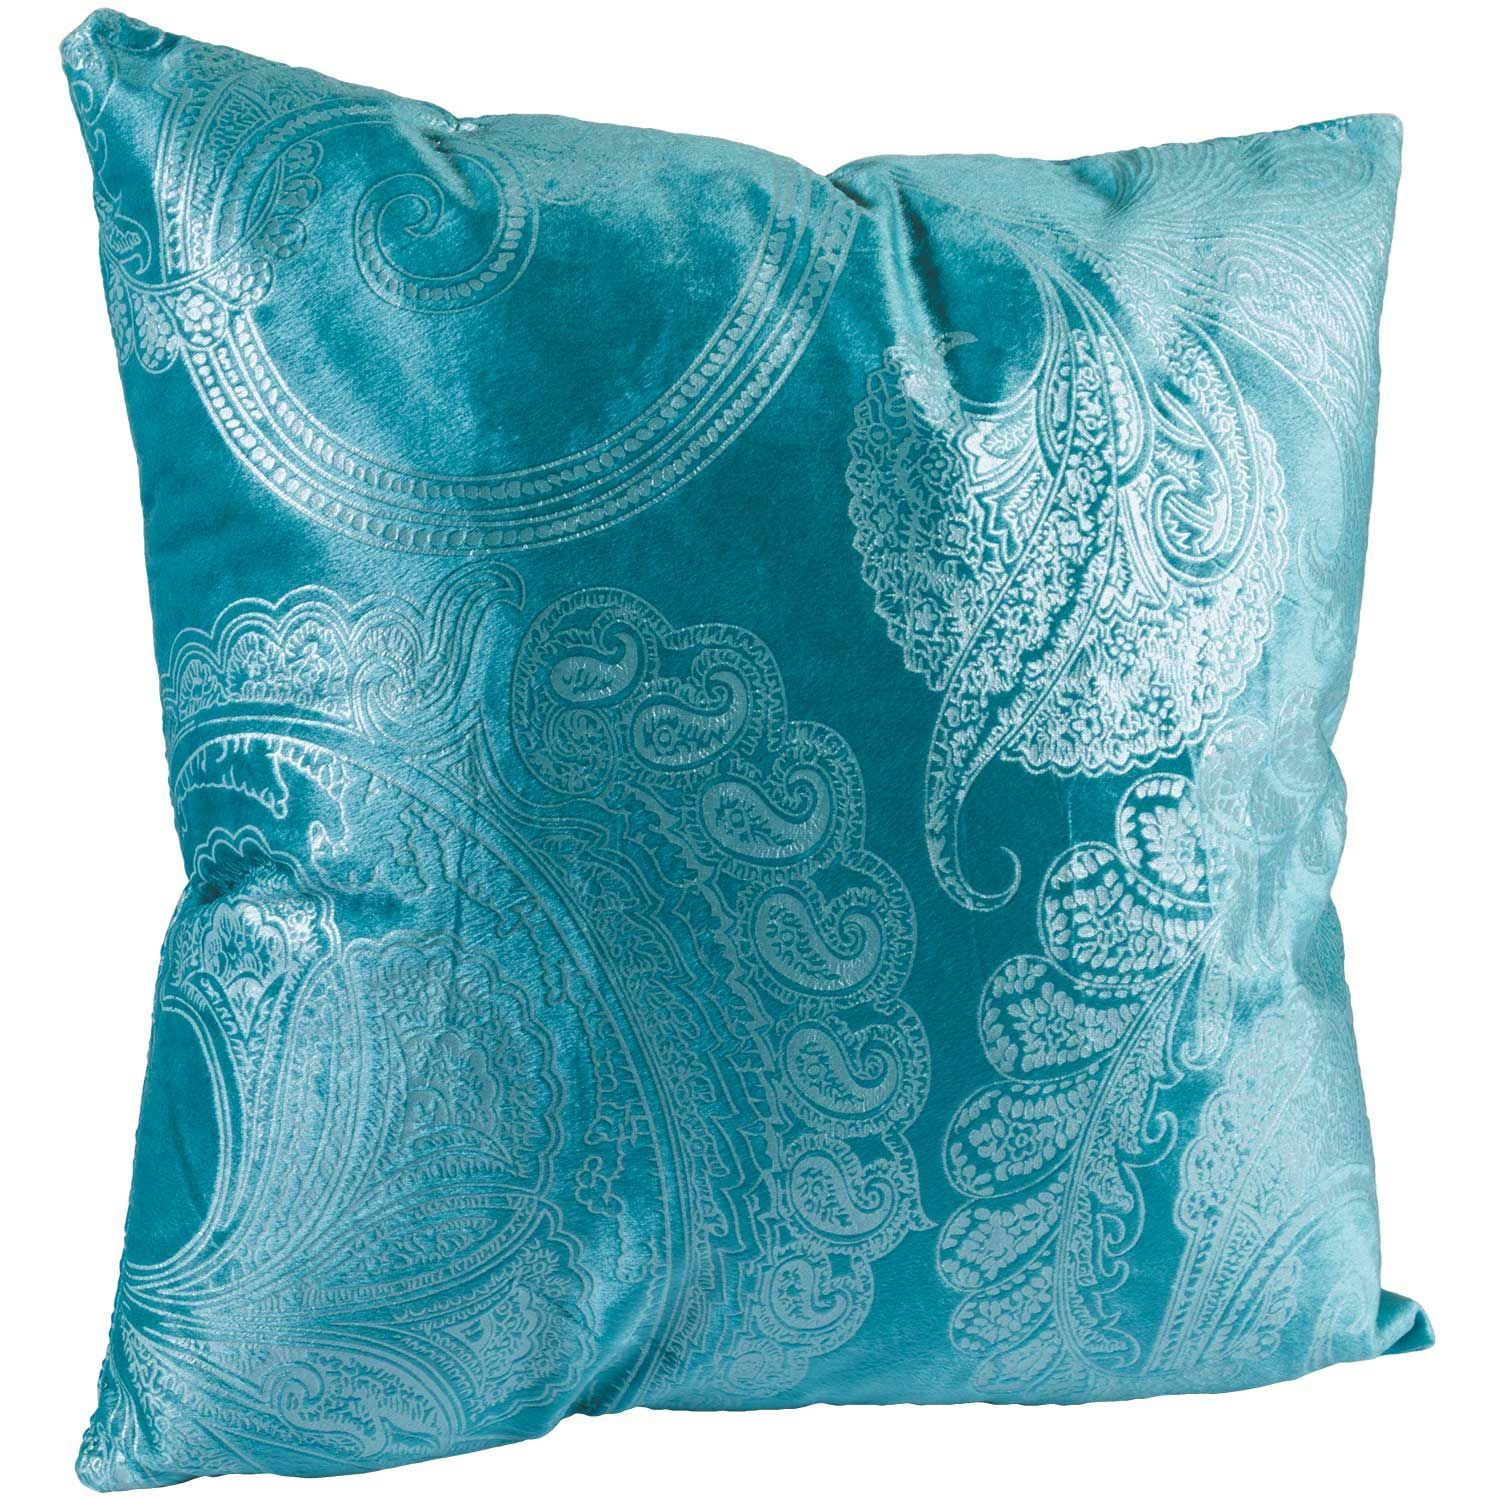 Picture of Teal Paisley 18x18 Decorative Pillow*P